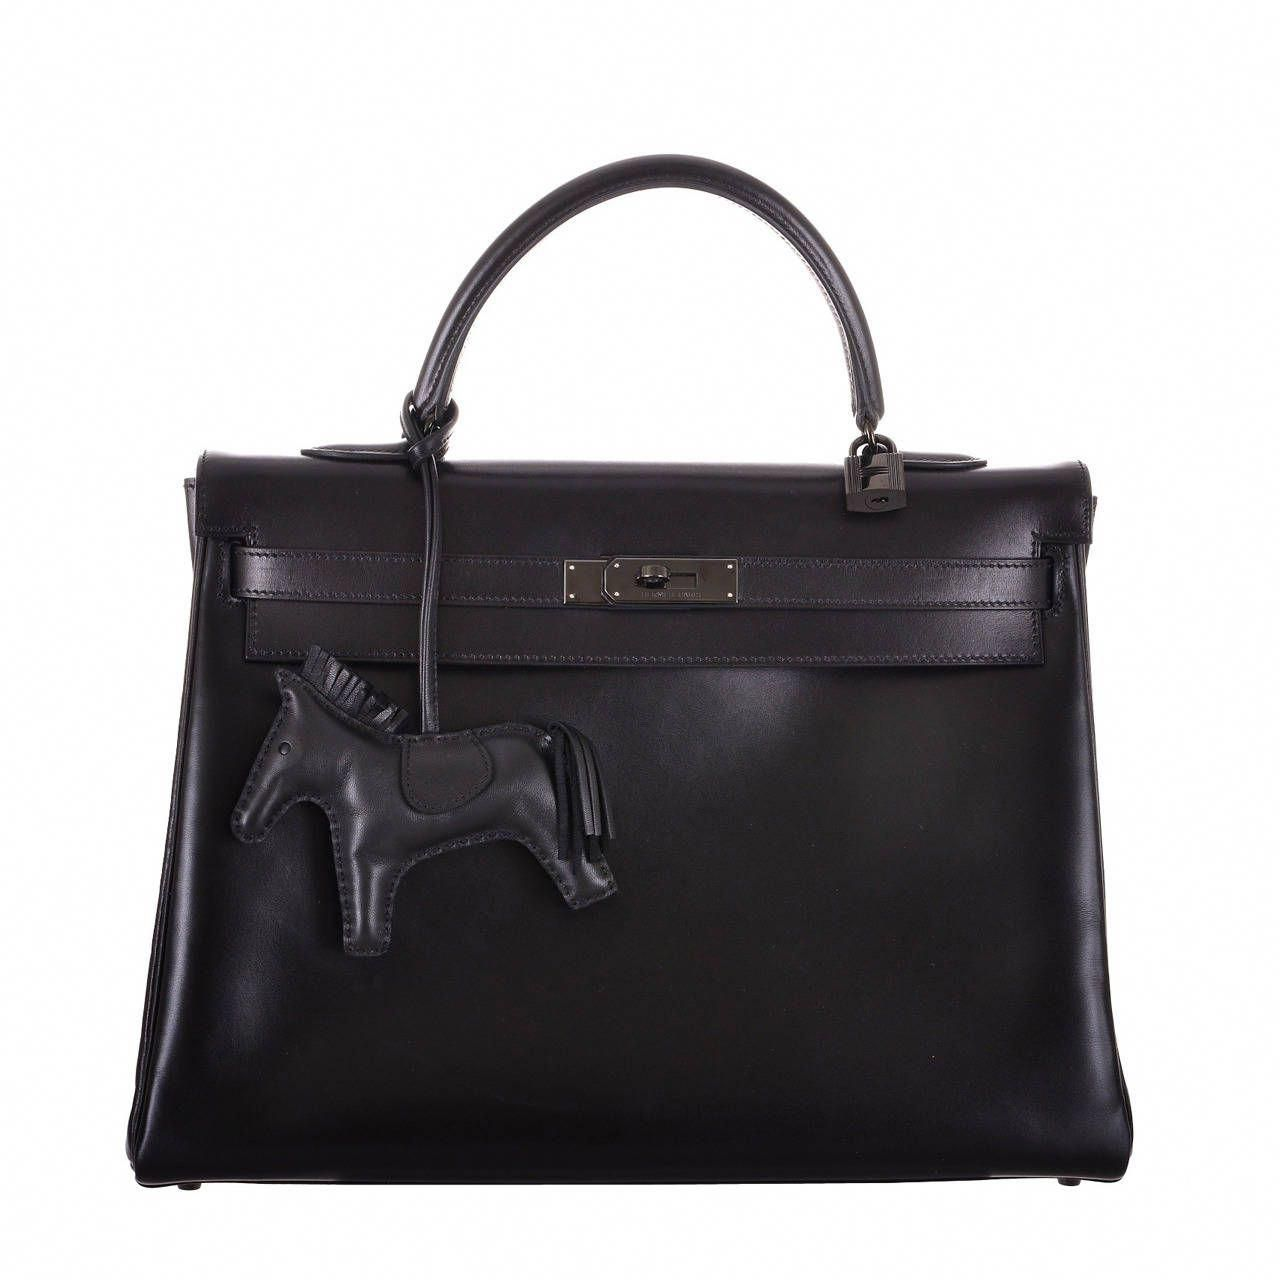 HERMÈS LIMITED EDITION SO BLACK BIRKIN IN BLACK CALFBOX LEATHER ... 87a7f34de1229